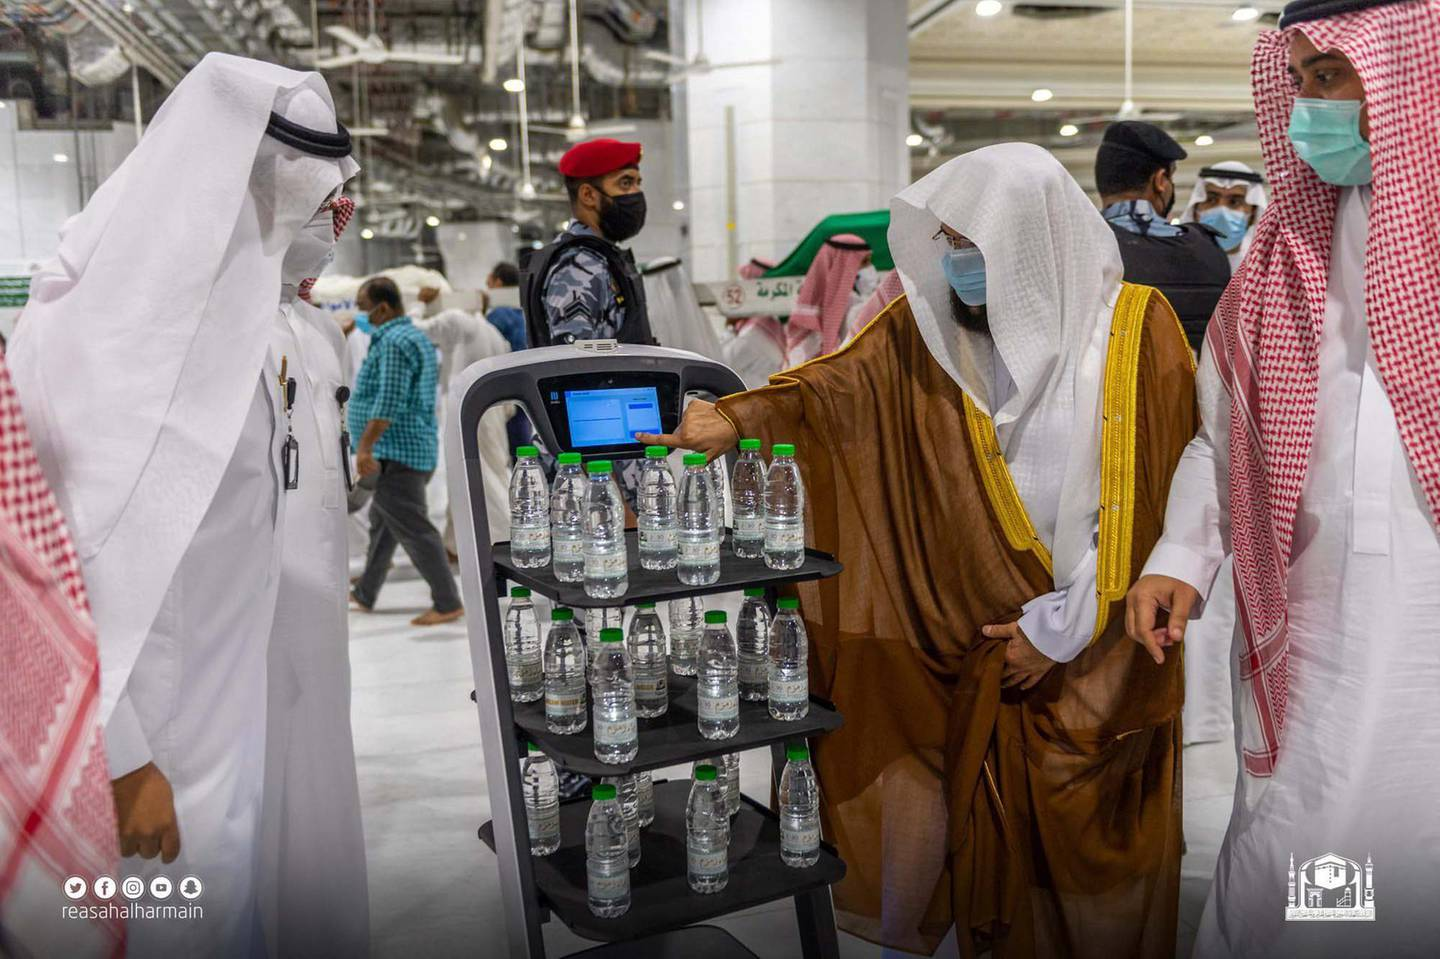 General President of the Affairs of the Grand Mosque and the Prophet's Mosque Abdul-Rahman Al-Sudais with robots serving Zamzam water bottles at the Grand Mosque in Makkah on Saturday. SPA